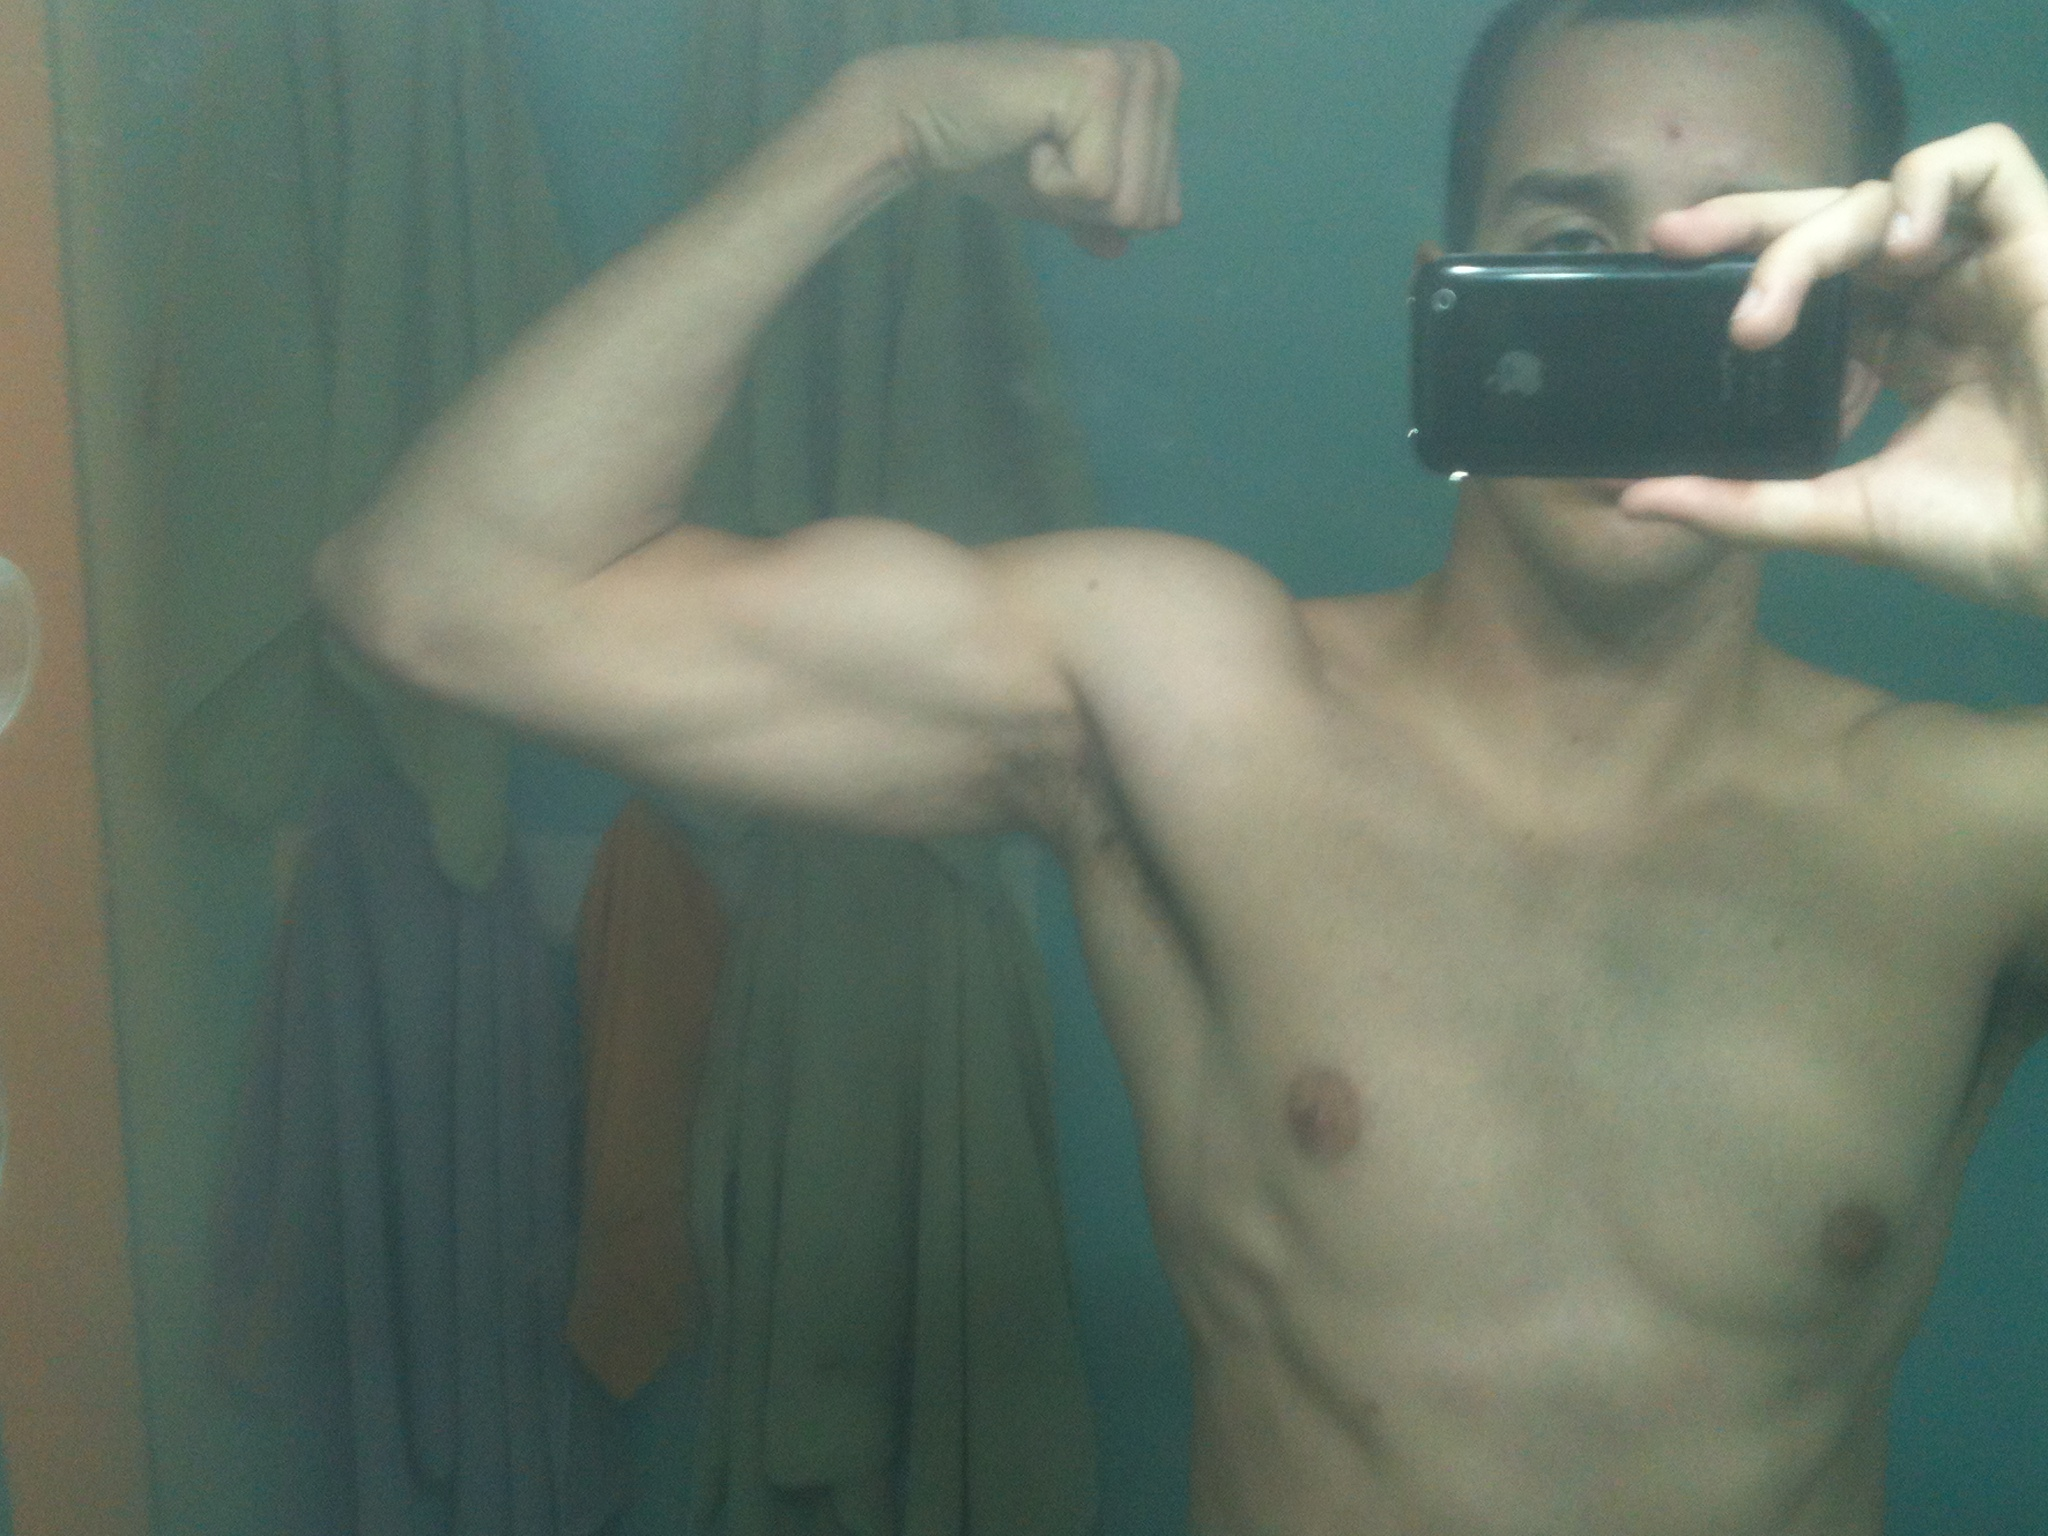 stubby  more monday shed competition fitness time hopefully vote